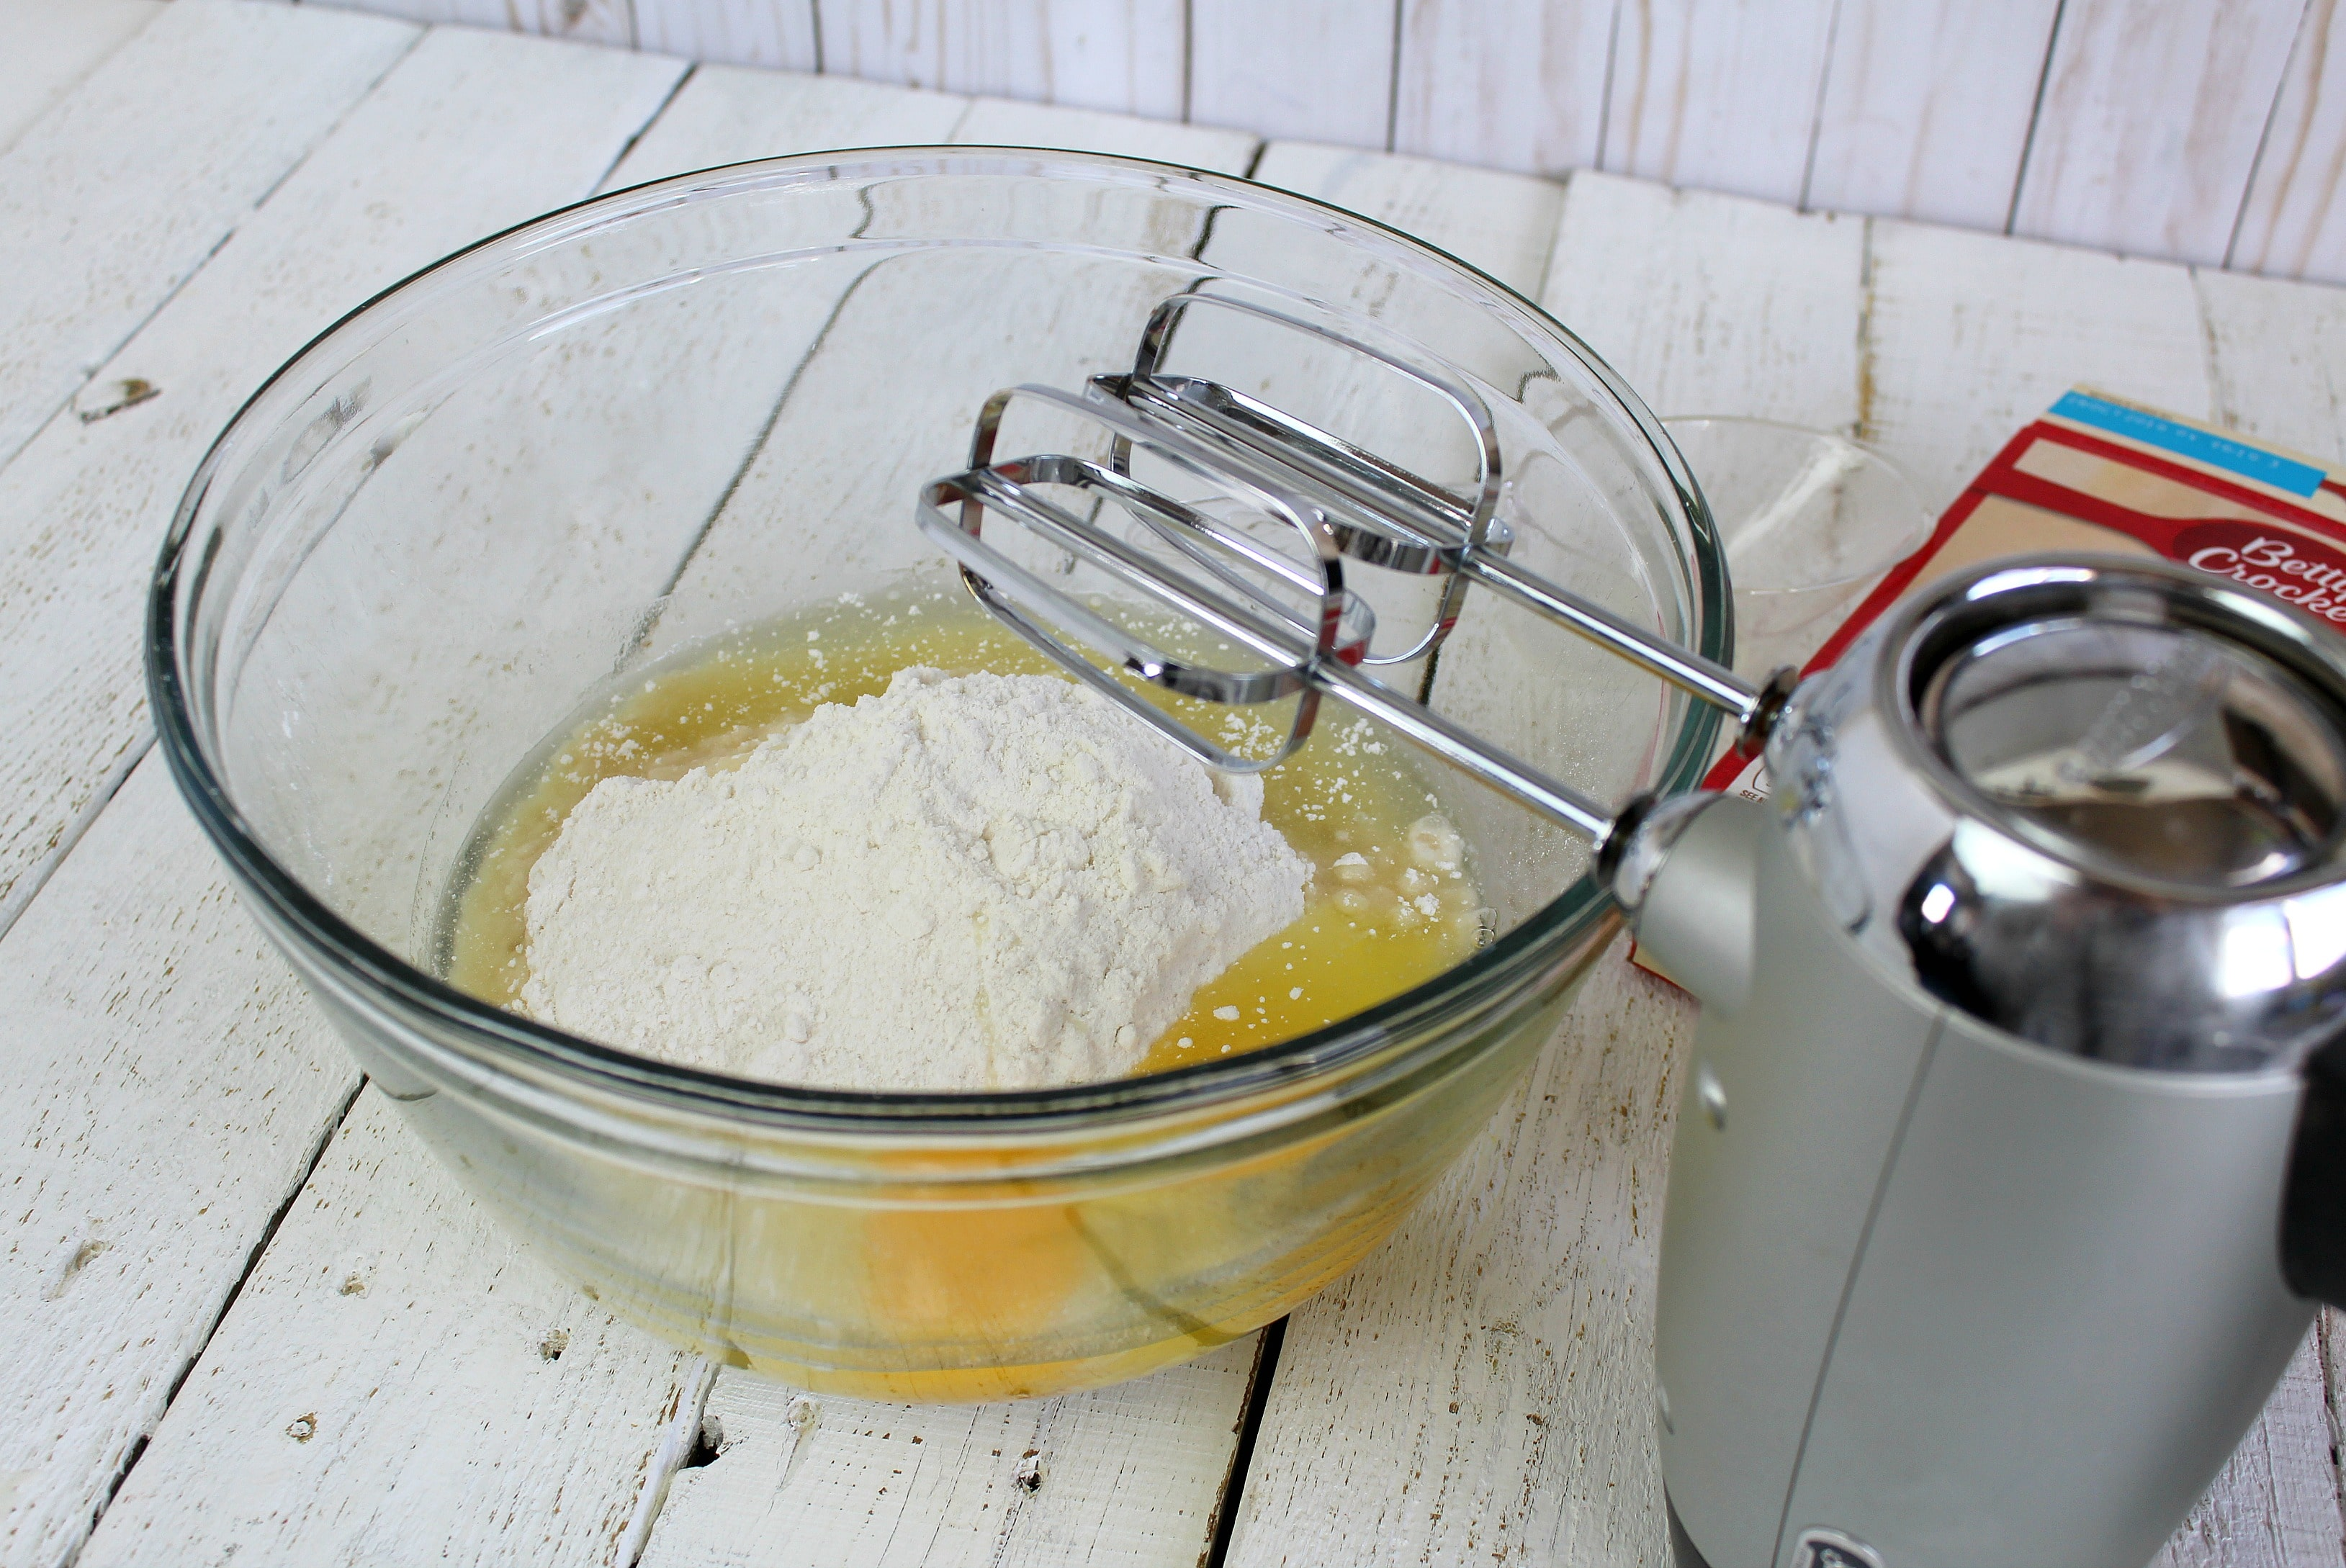 In a large bowl, beat together with electric mixer the white cake mix, oil, and eggs until well combined.